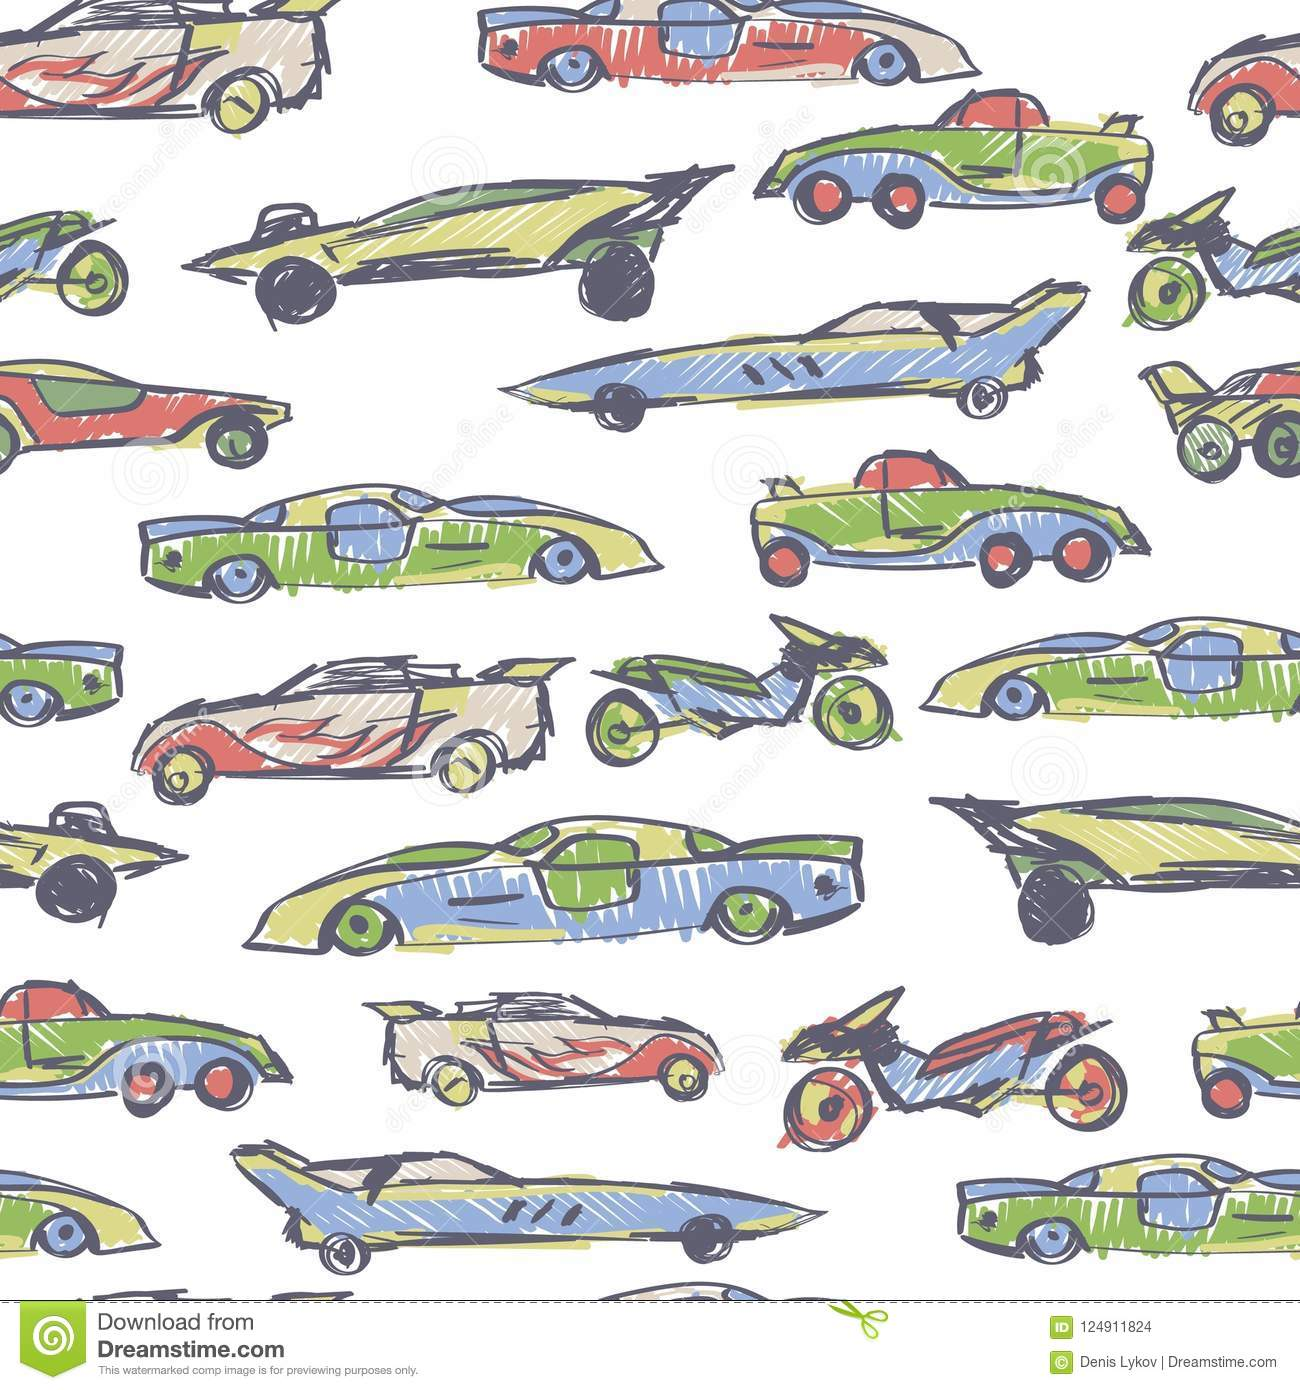 1300x1390 - Wallpaper Cars Cartoon 38